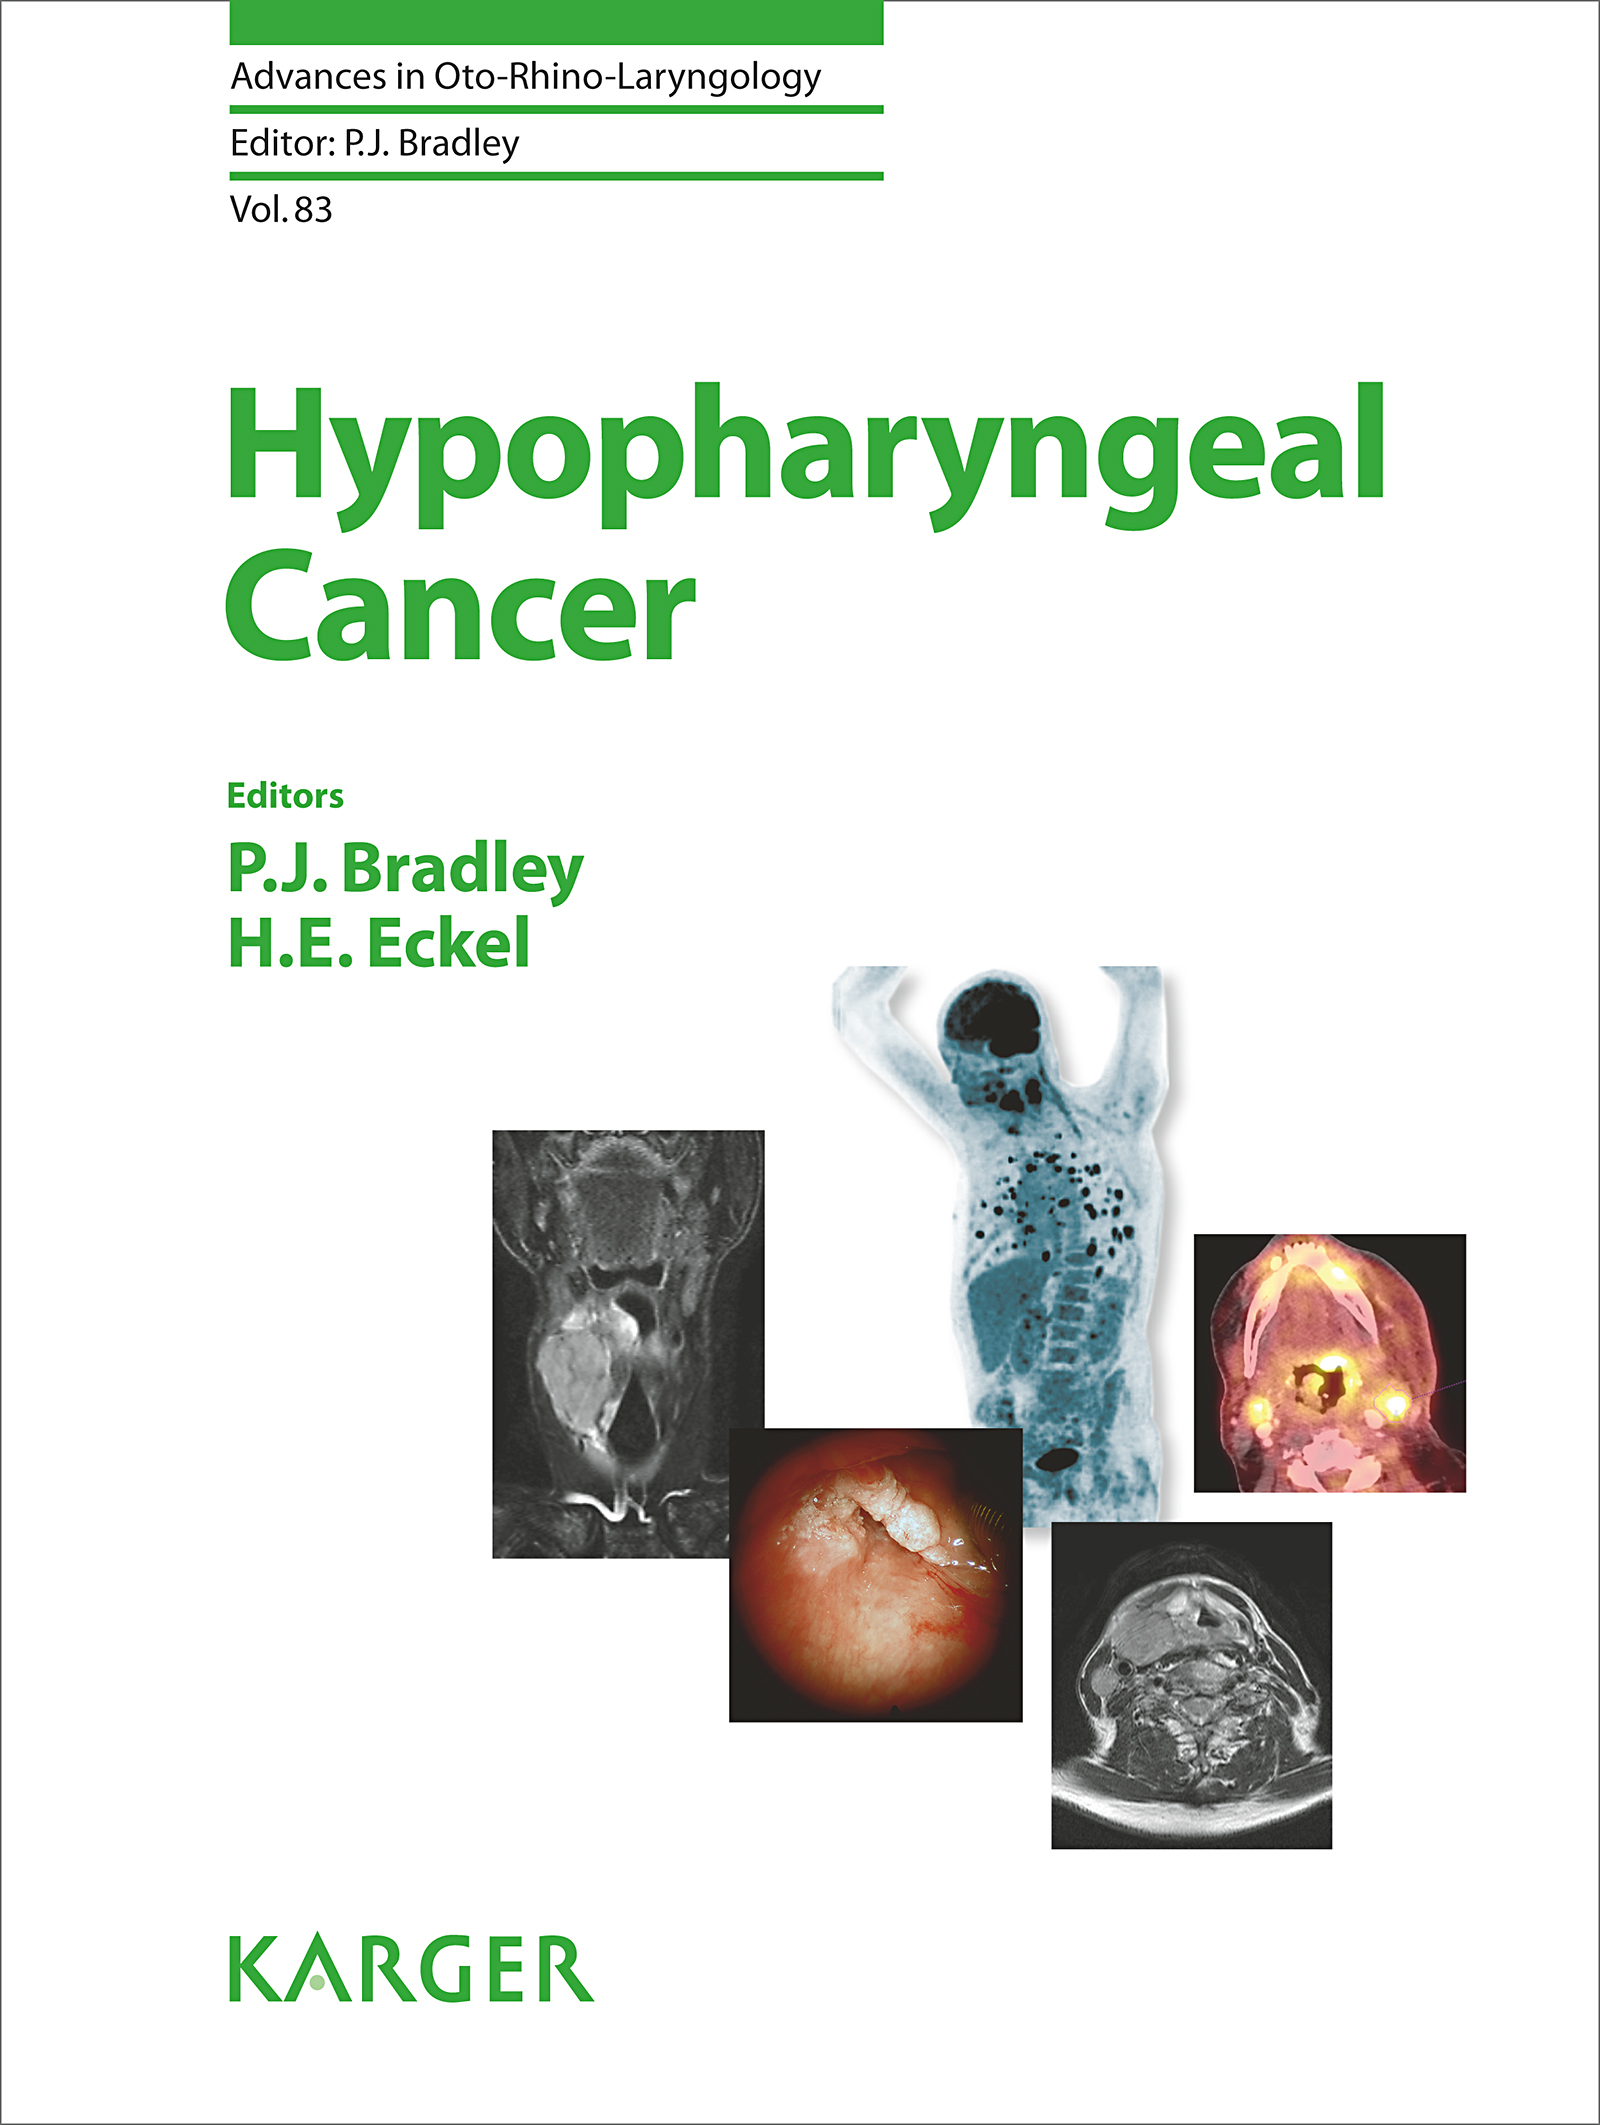 Advances in Oto-Rhino-Laryngology, Vol. 83: Hypopharyngeal Cancer